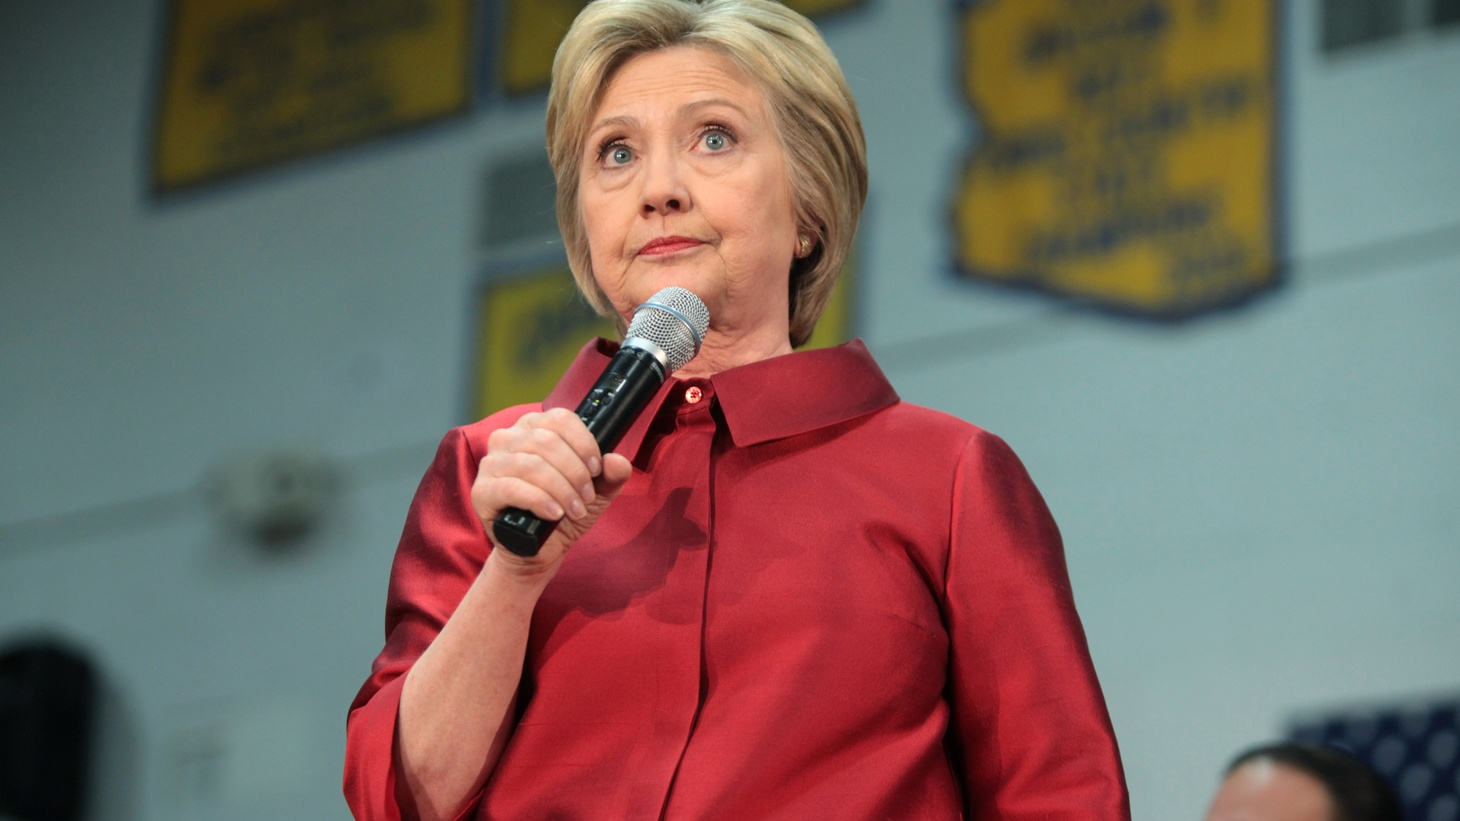 """Hillary Clinton's been cleared of criminal wrongdoing in her use of email servers while Secretary of State, but that doesn't mean Republicans -- or voters -- will let her off the hook. How the """"extremely careless"""" charge could dog Clinton until November, coming up."""